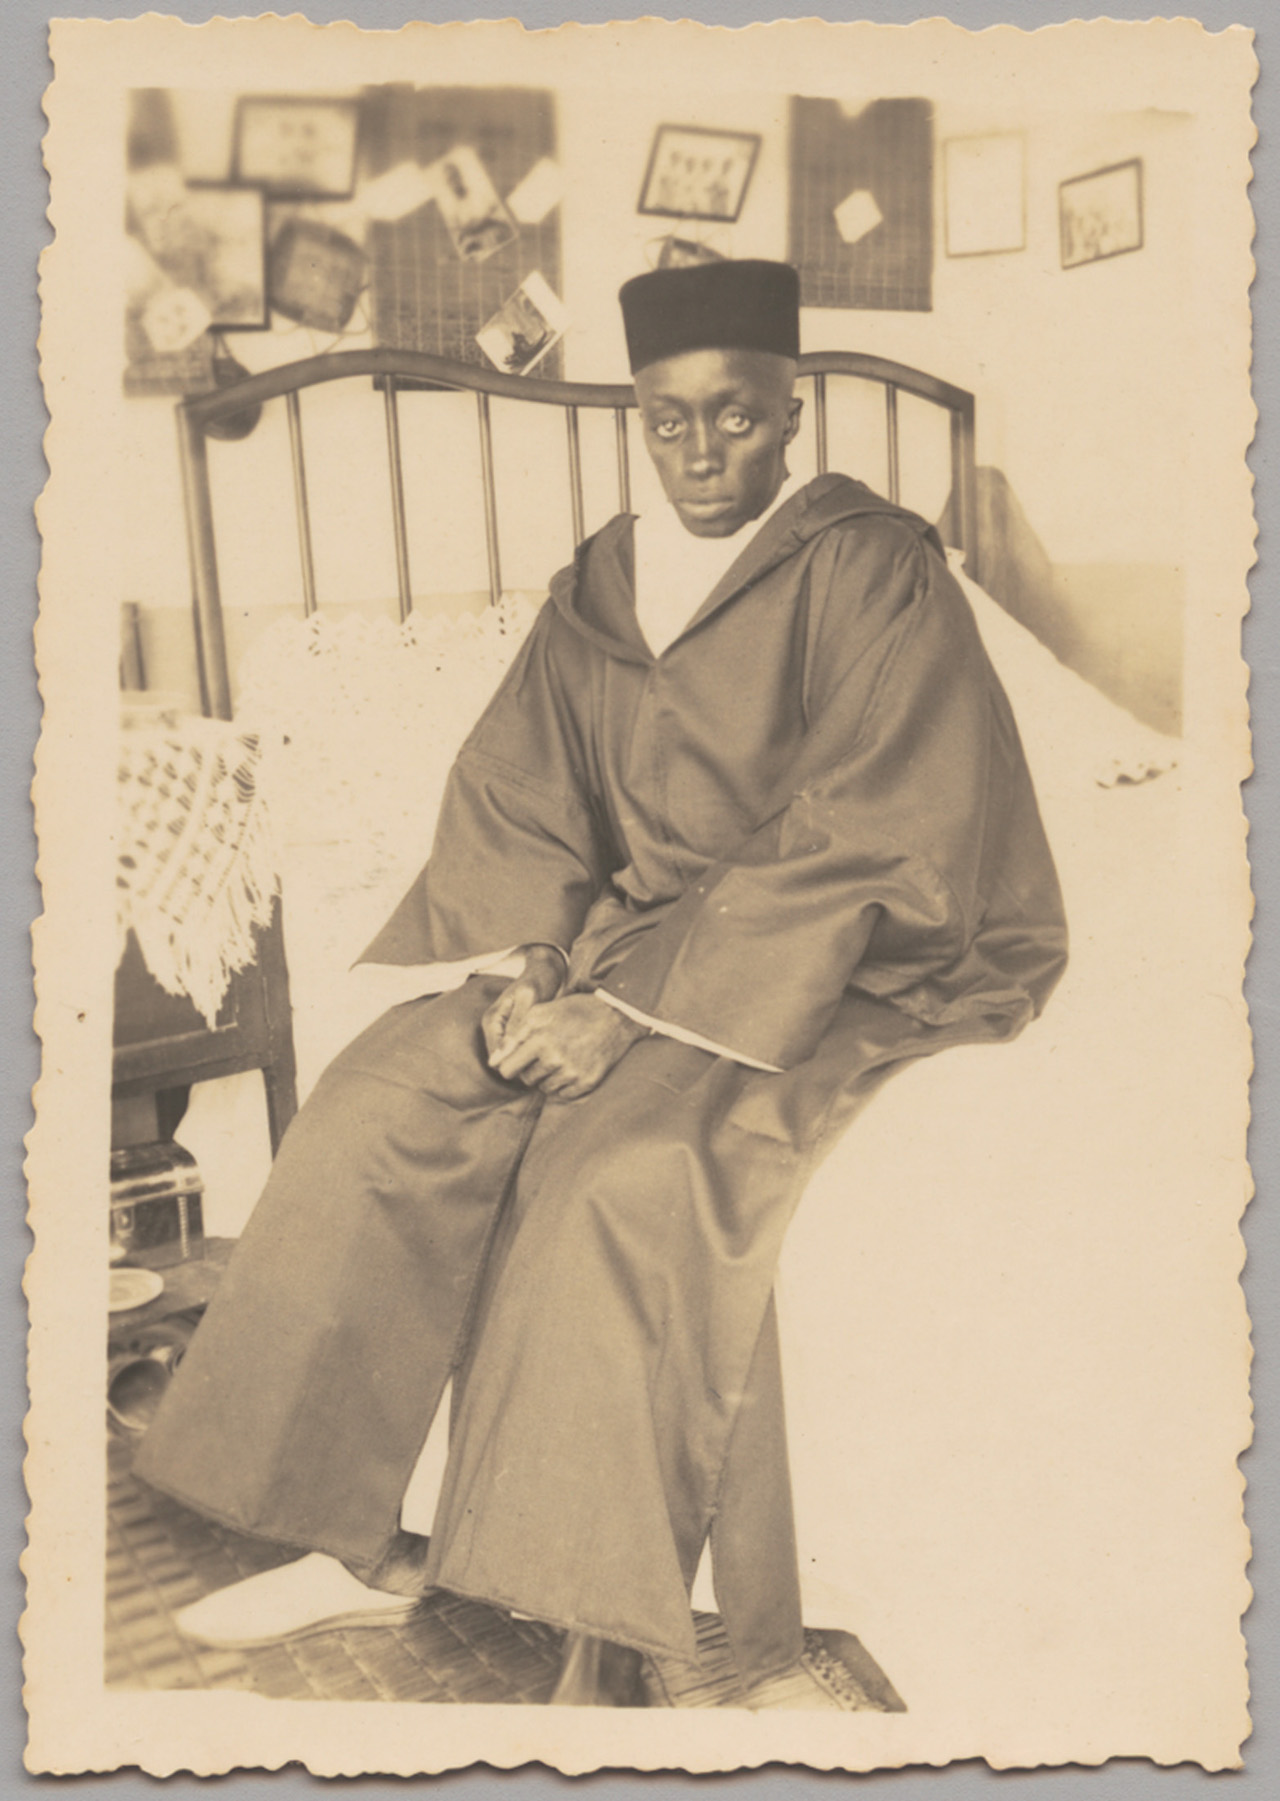 Unknown Artist (Senegal) Seated Man, 1930s-1940s Gelatin silver print 5 x 3 in (13.3 x 8.3 cm) Visual Resource Archive, Department of the Arts of Africa, Oceania, and the Americas